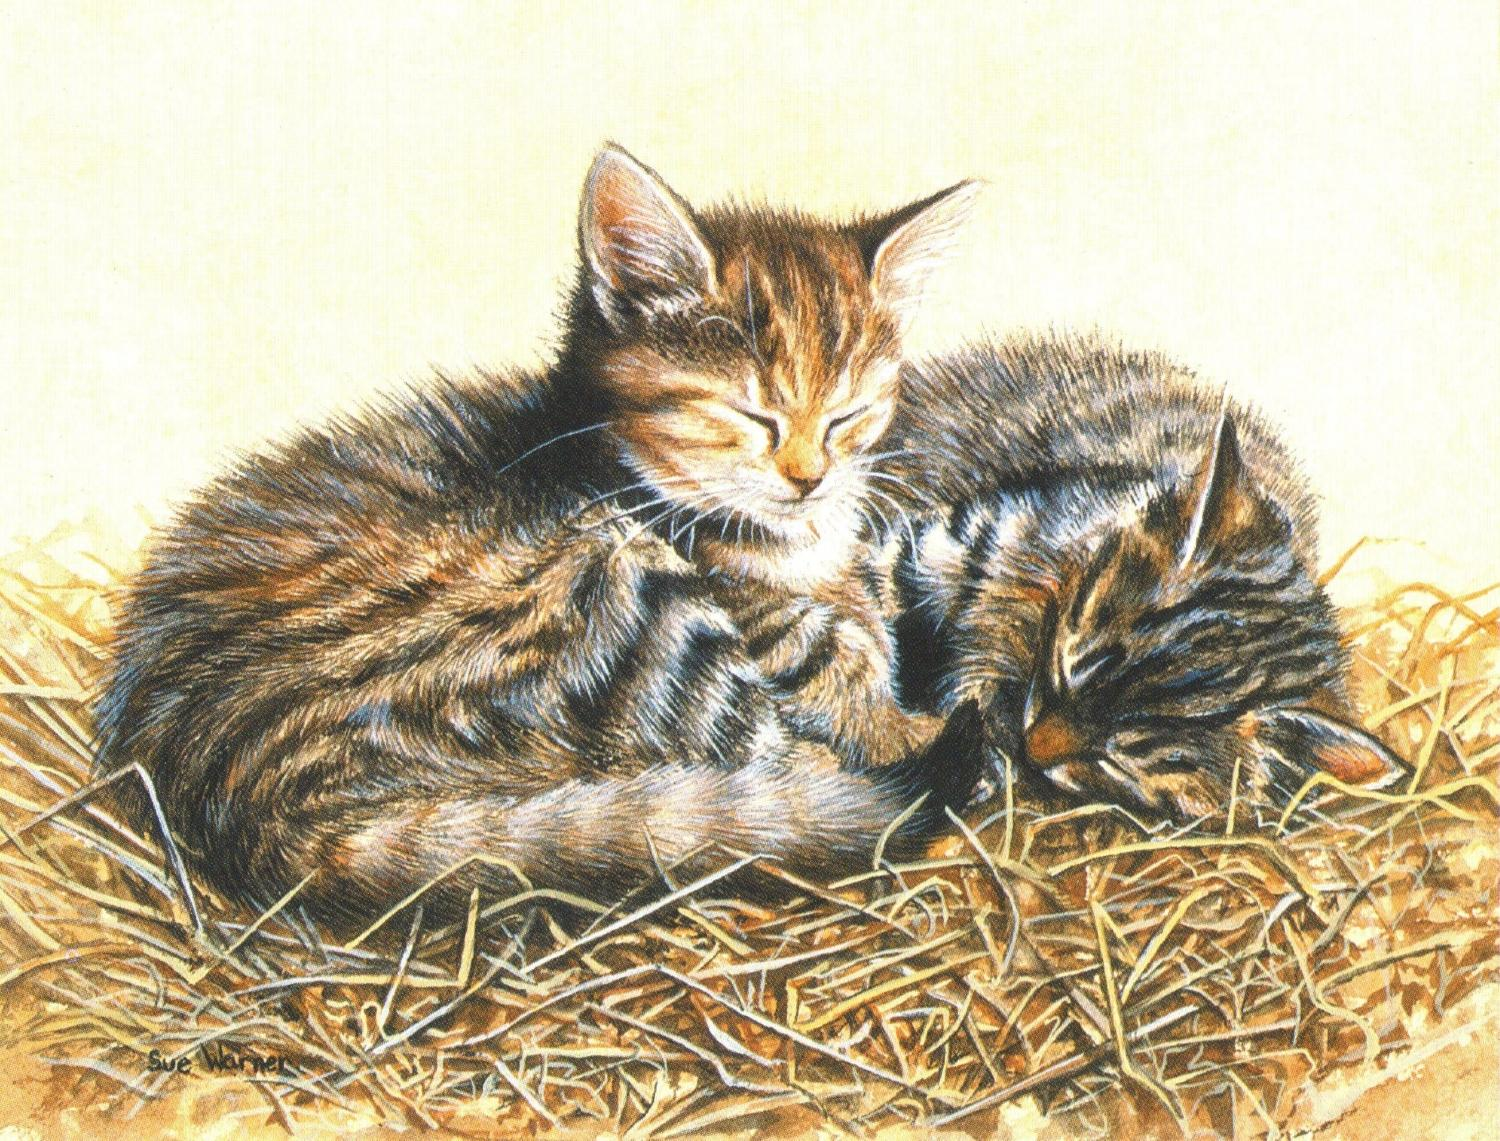 Magnetic Fridge Pad - Cats in Straw